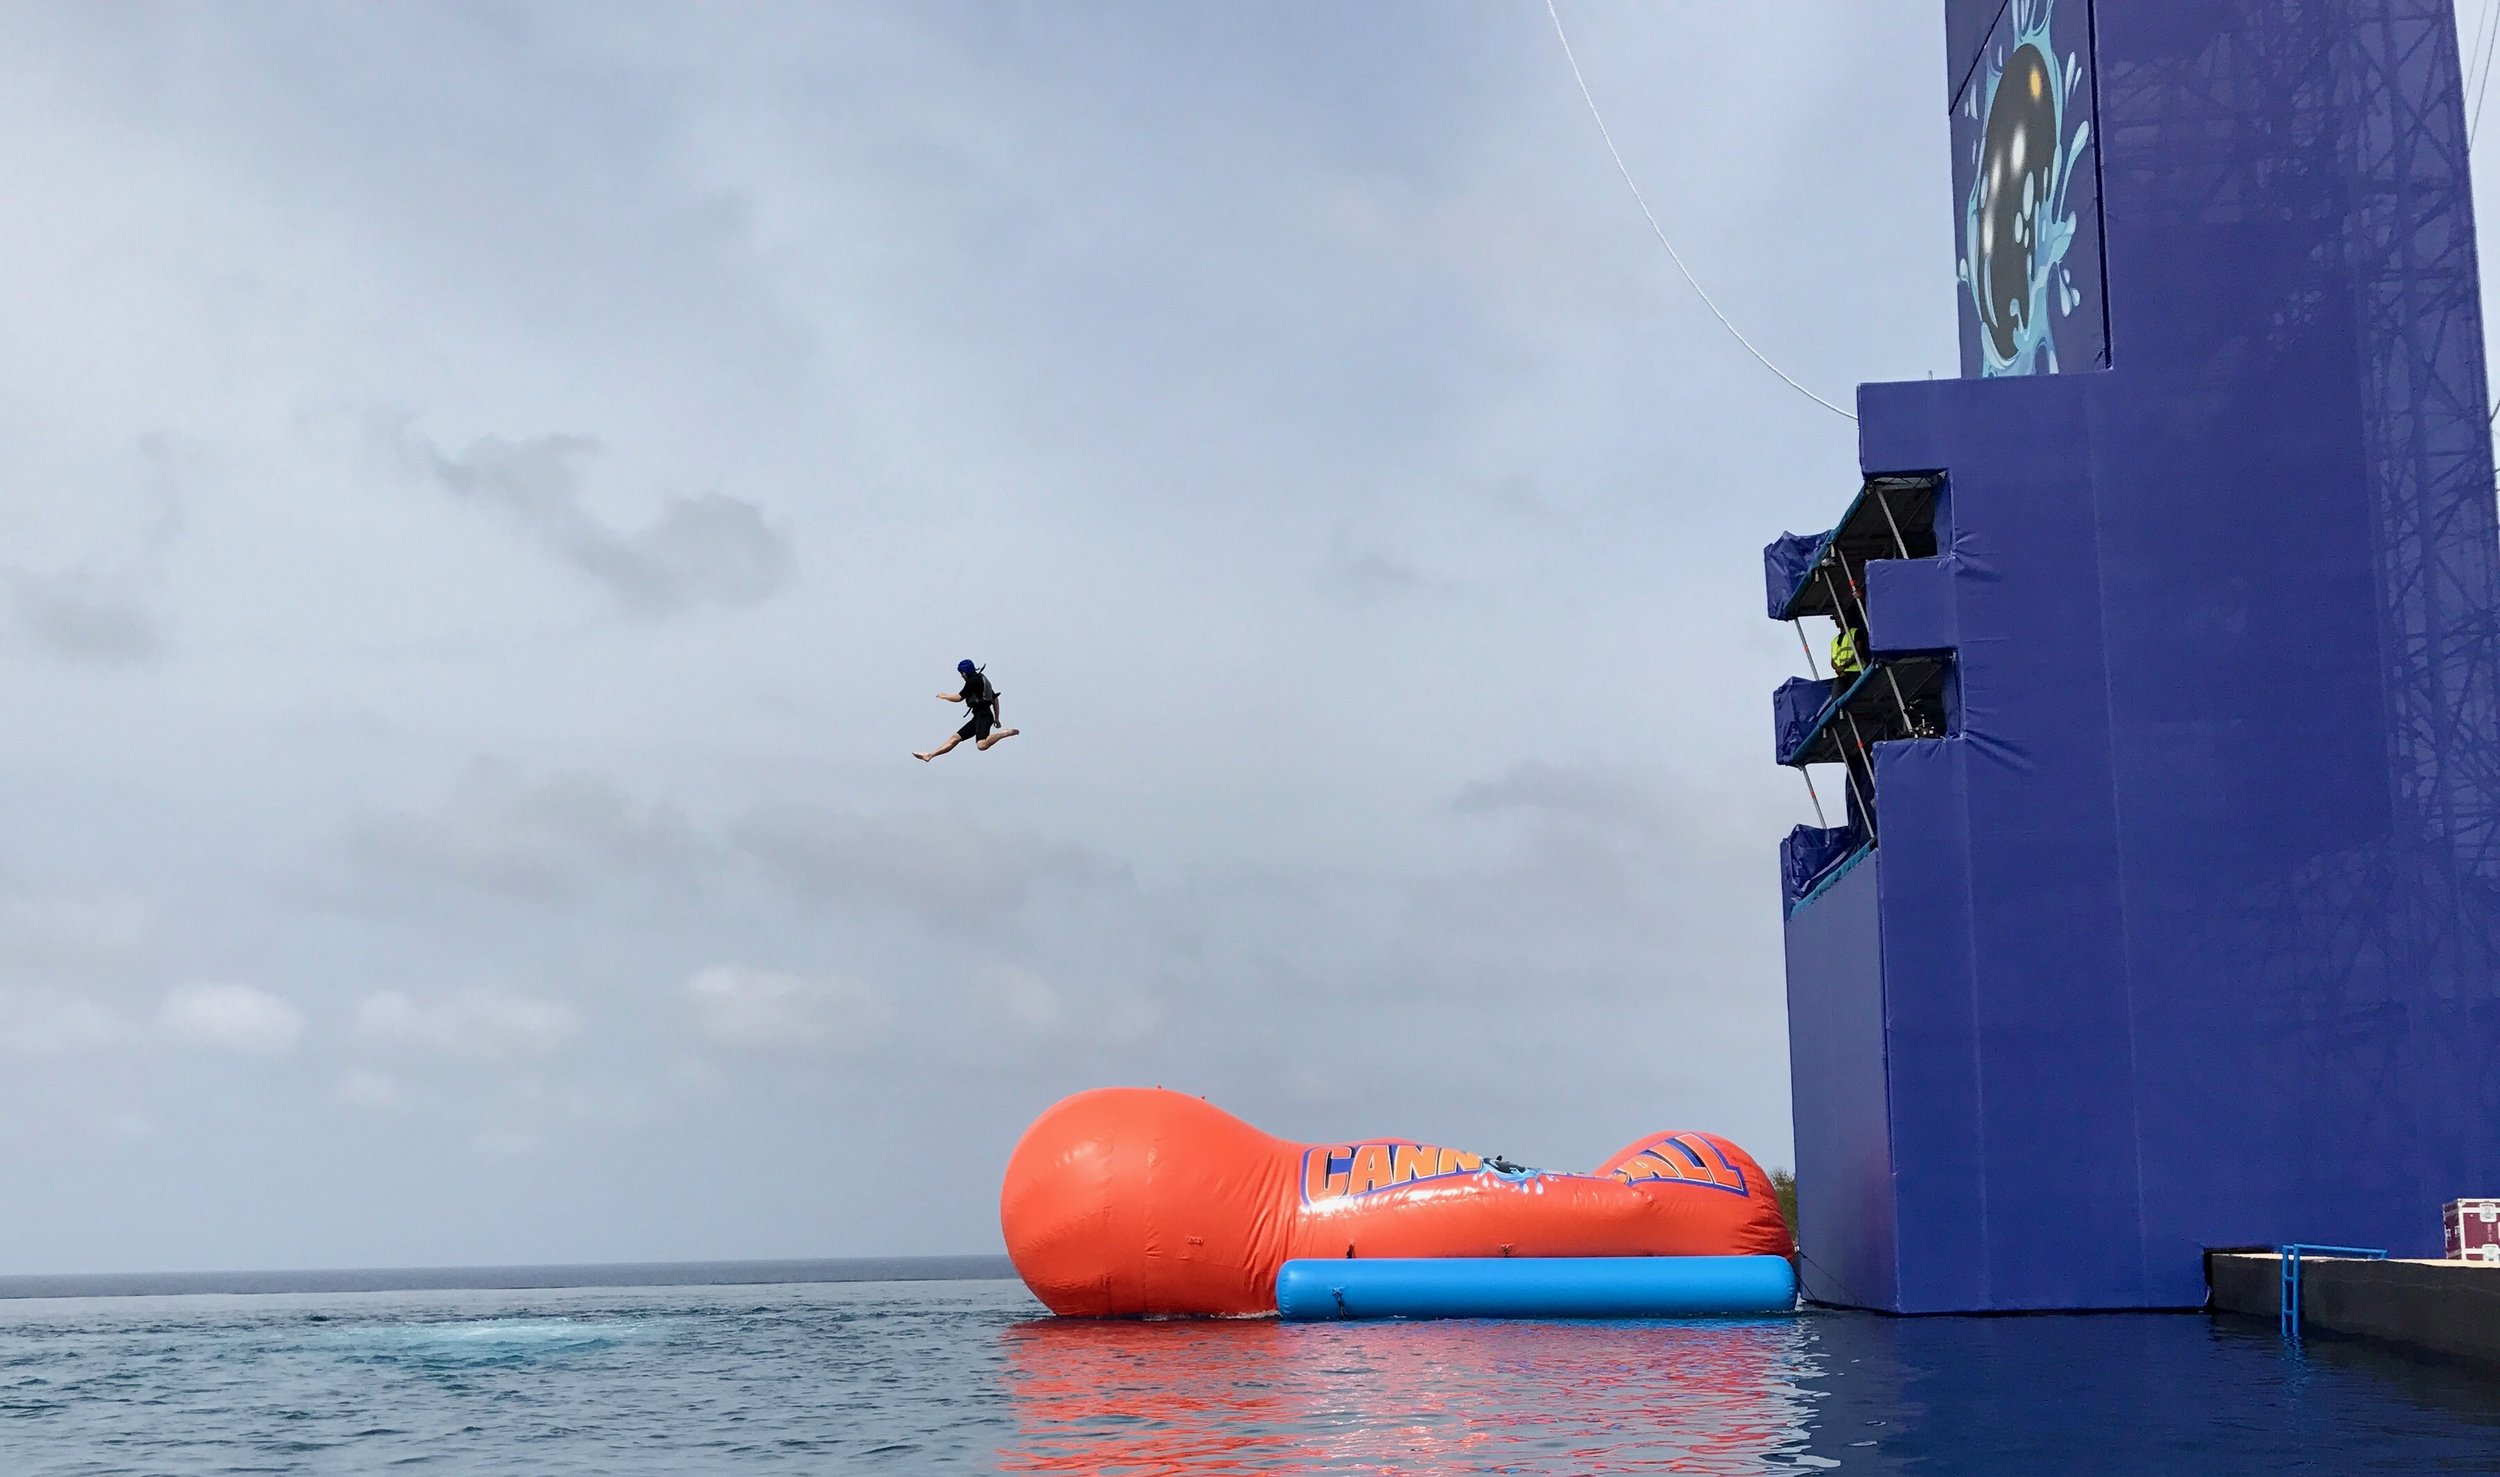 Double Decker platform to jump onto the Fat Boys Blob in Malta.  Notice that they also installed air bubbles to come up where the launched person lands to break the water surface up.  That's pretty clever!